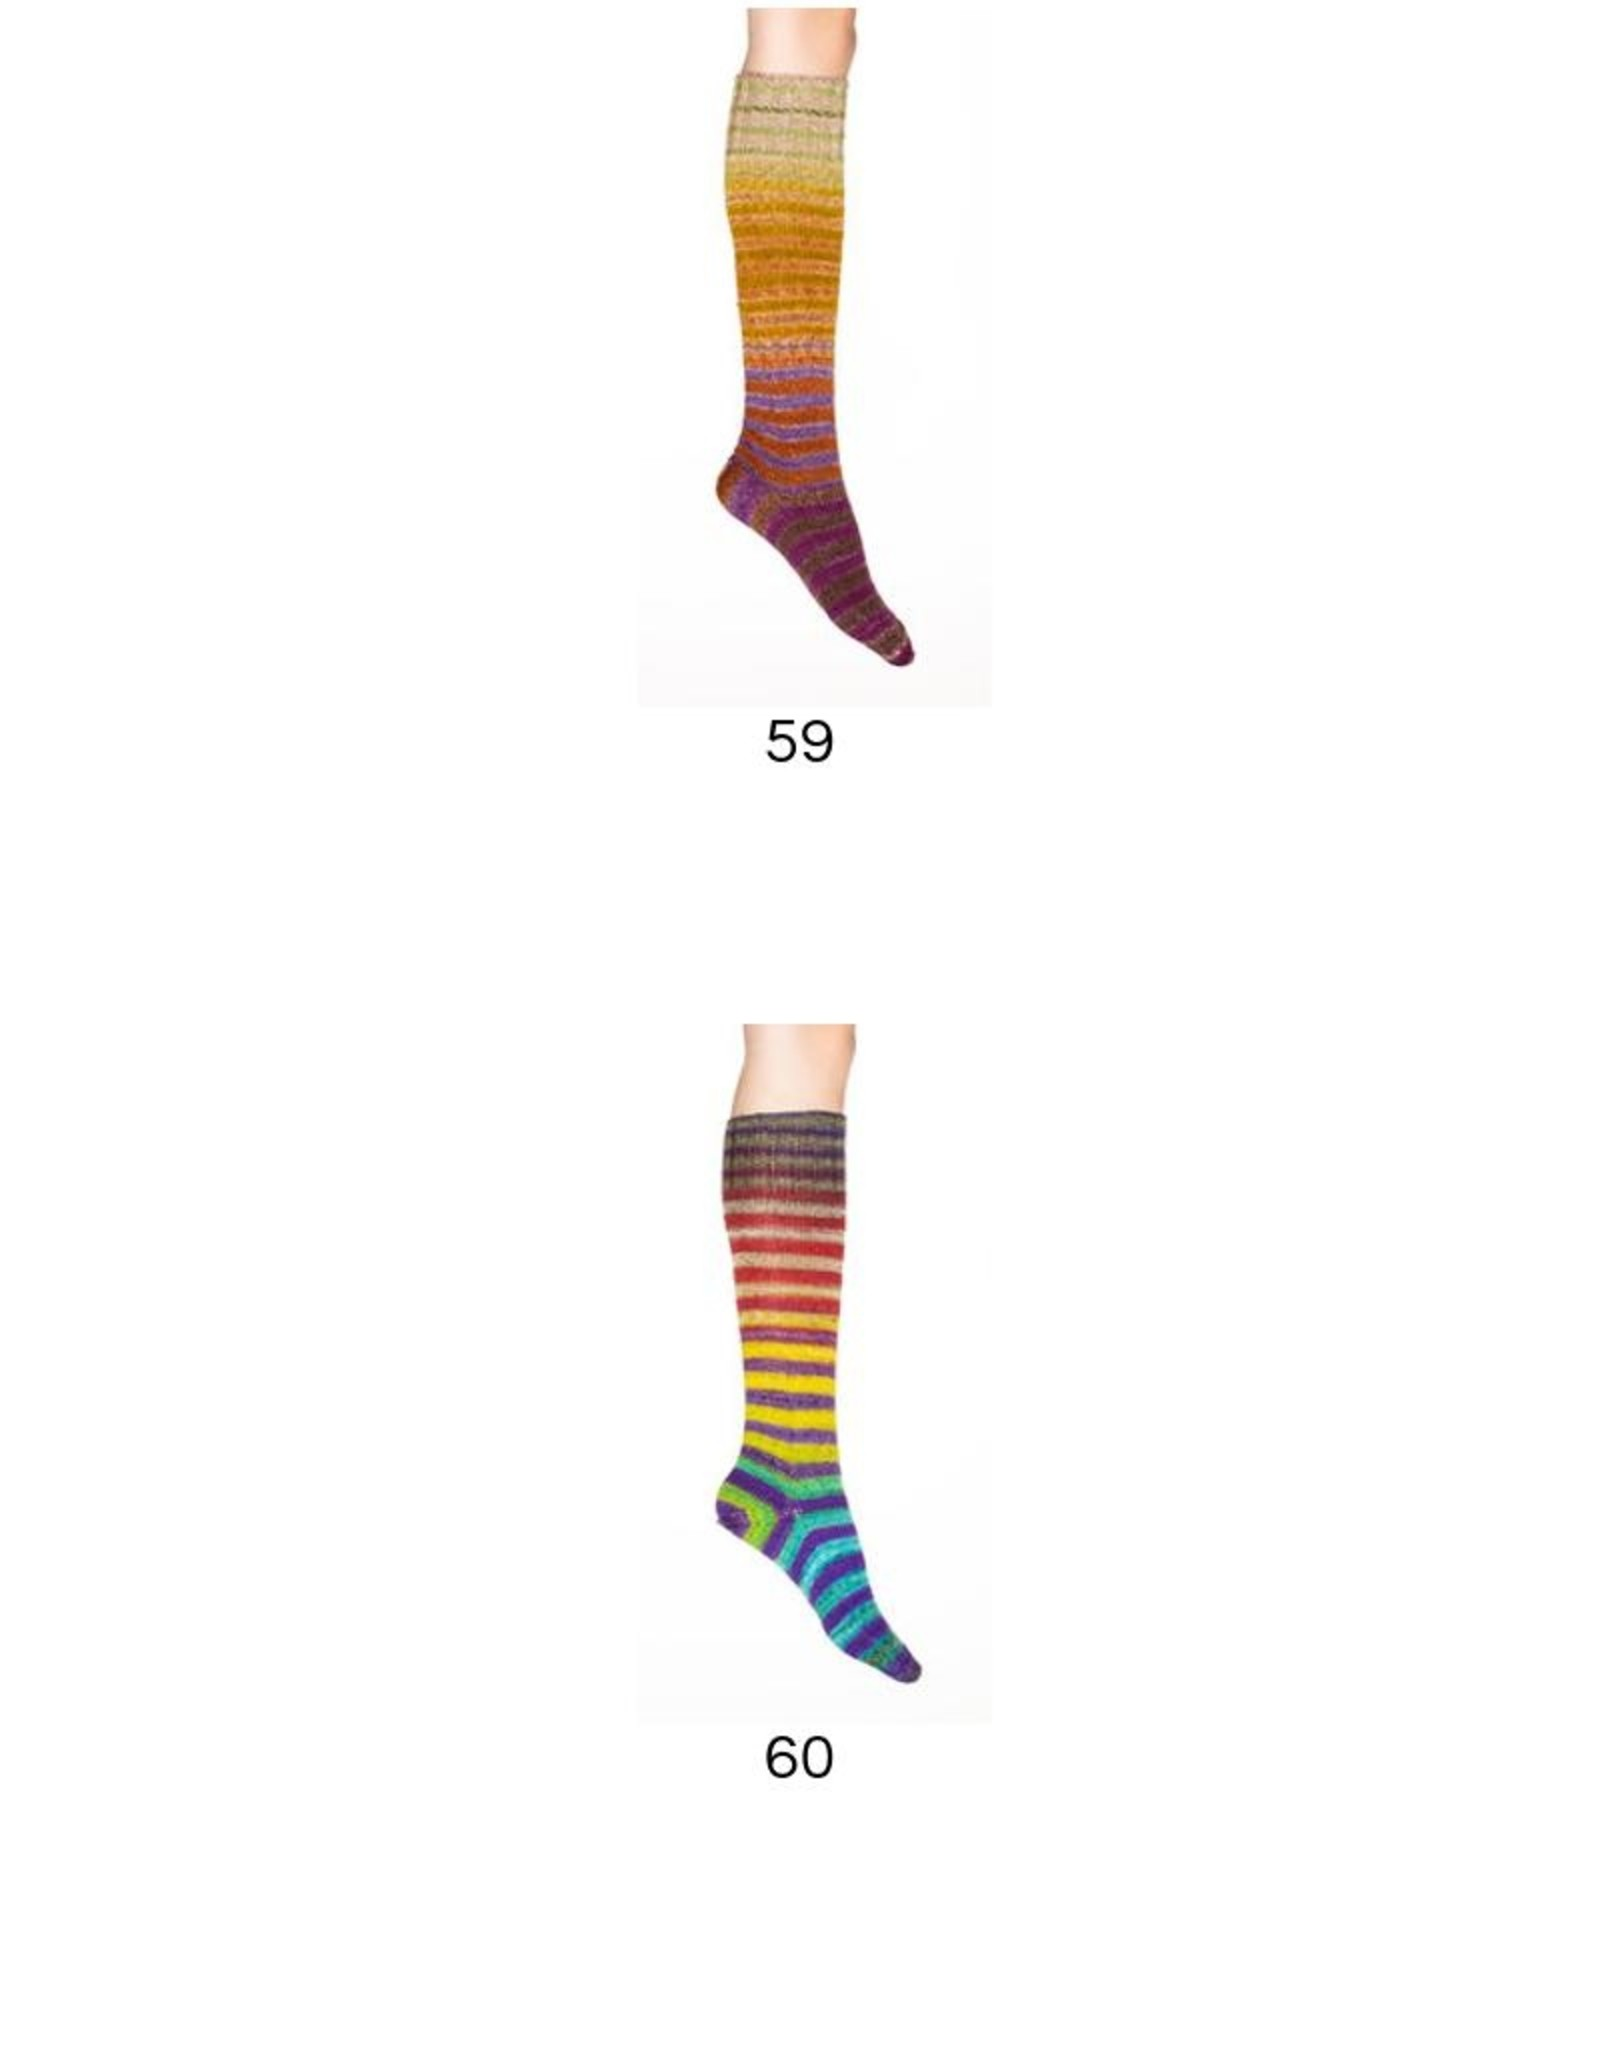 Urth Uneek Sock Kits